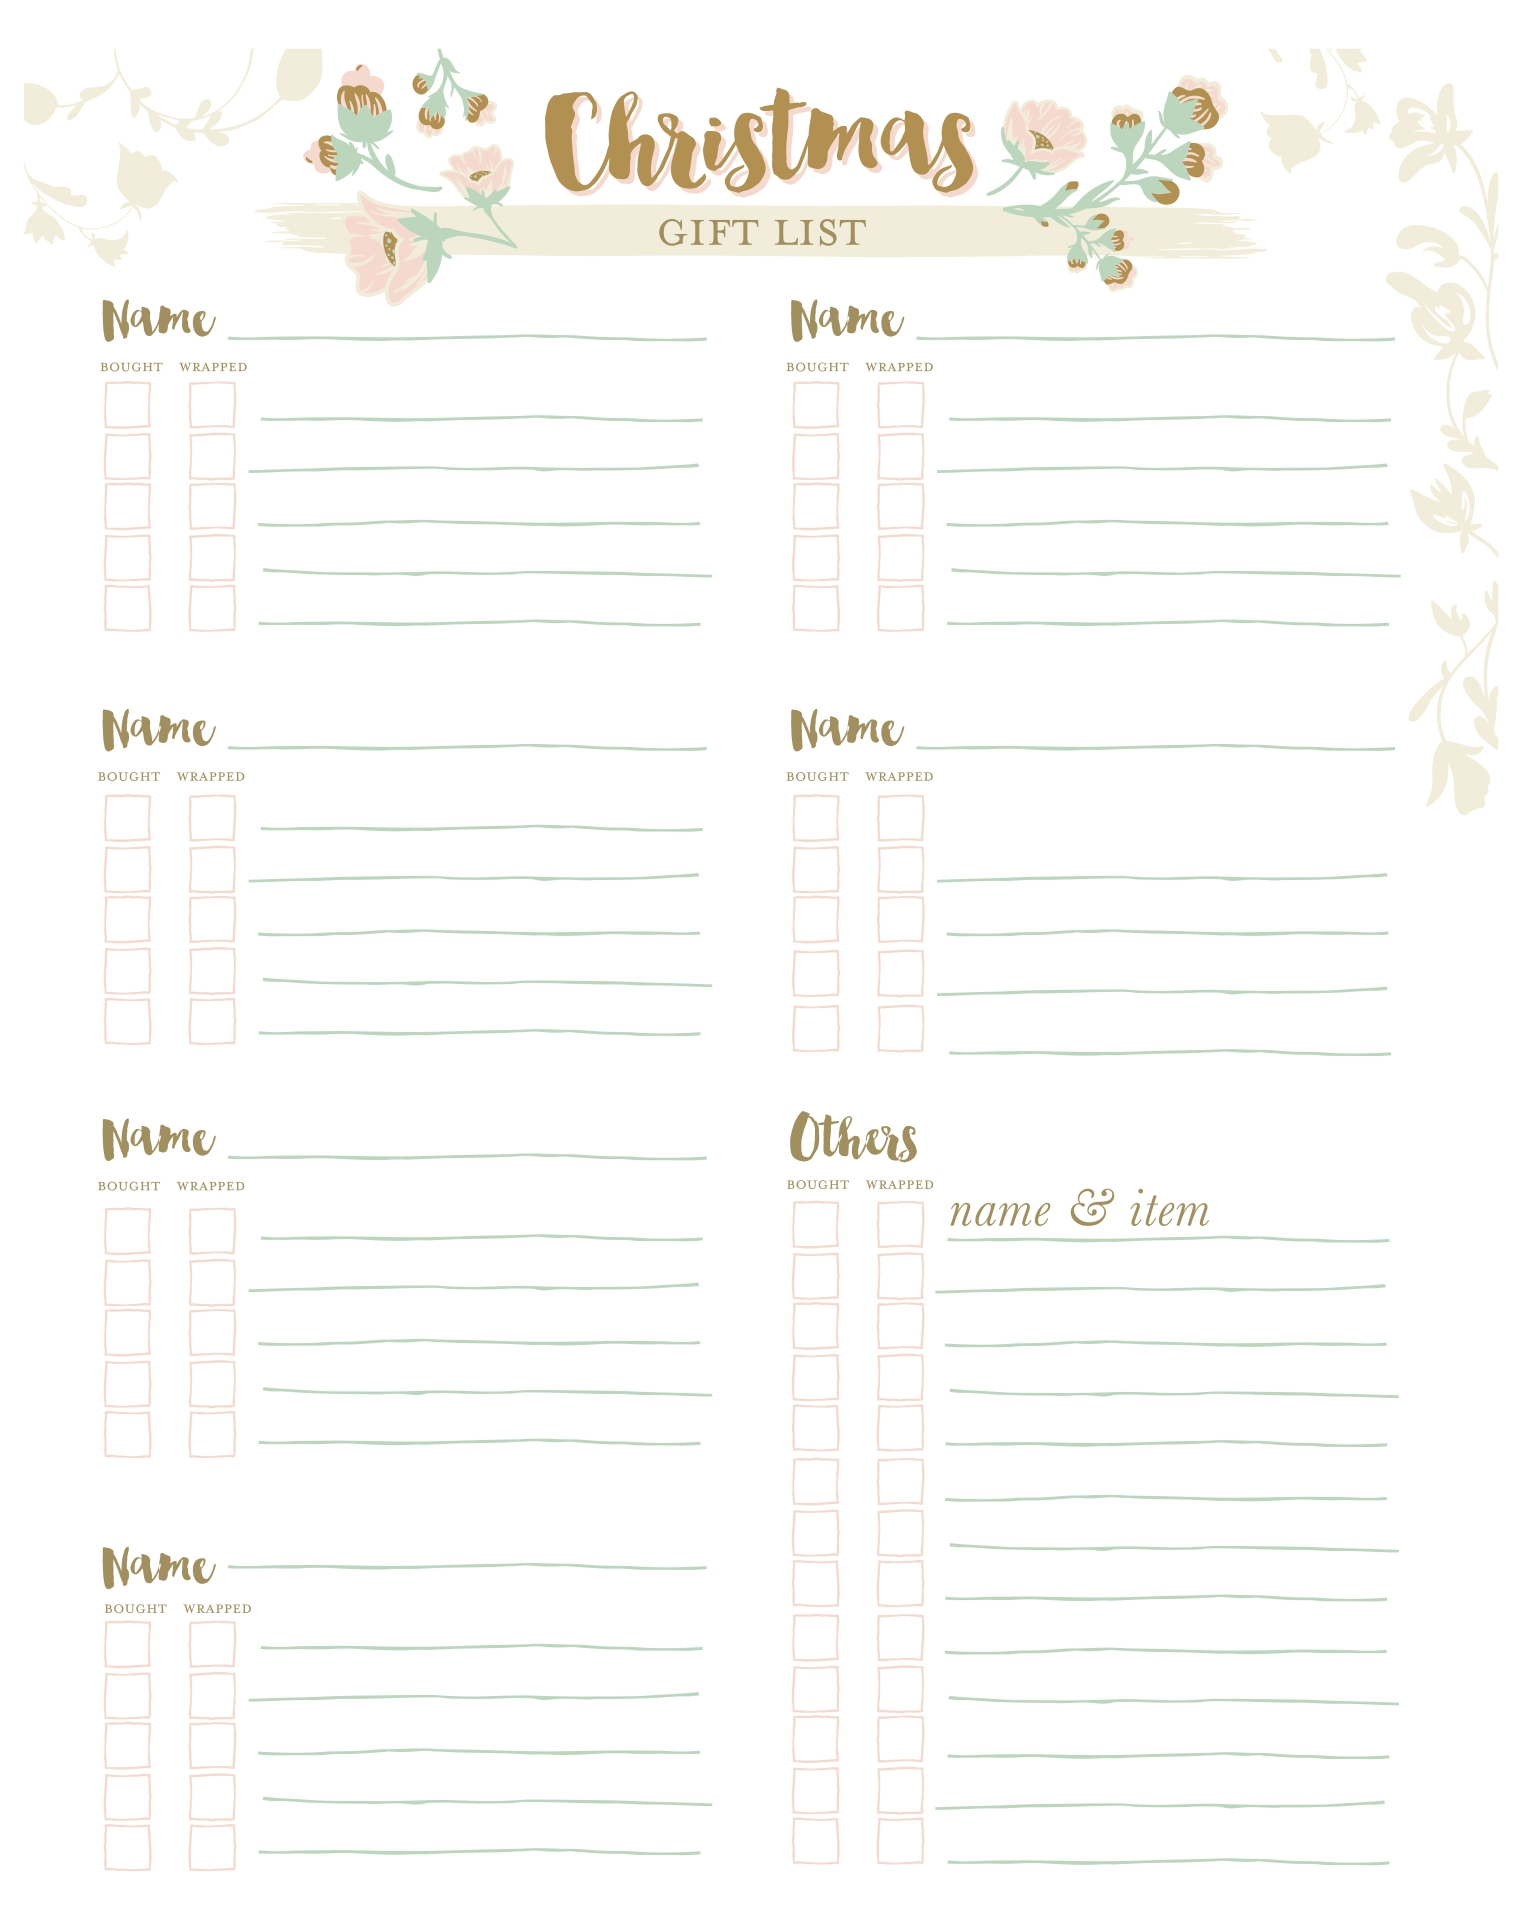 5 Images of Free Printable Christmas Organization Lists